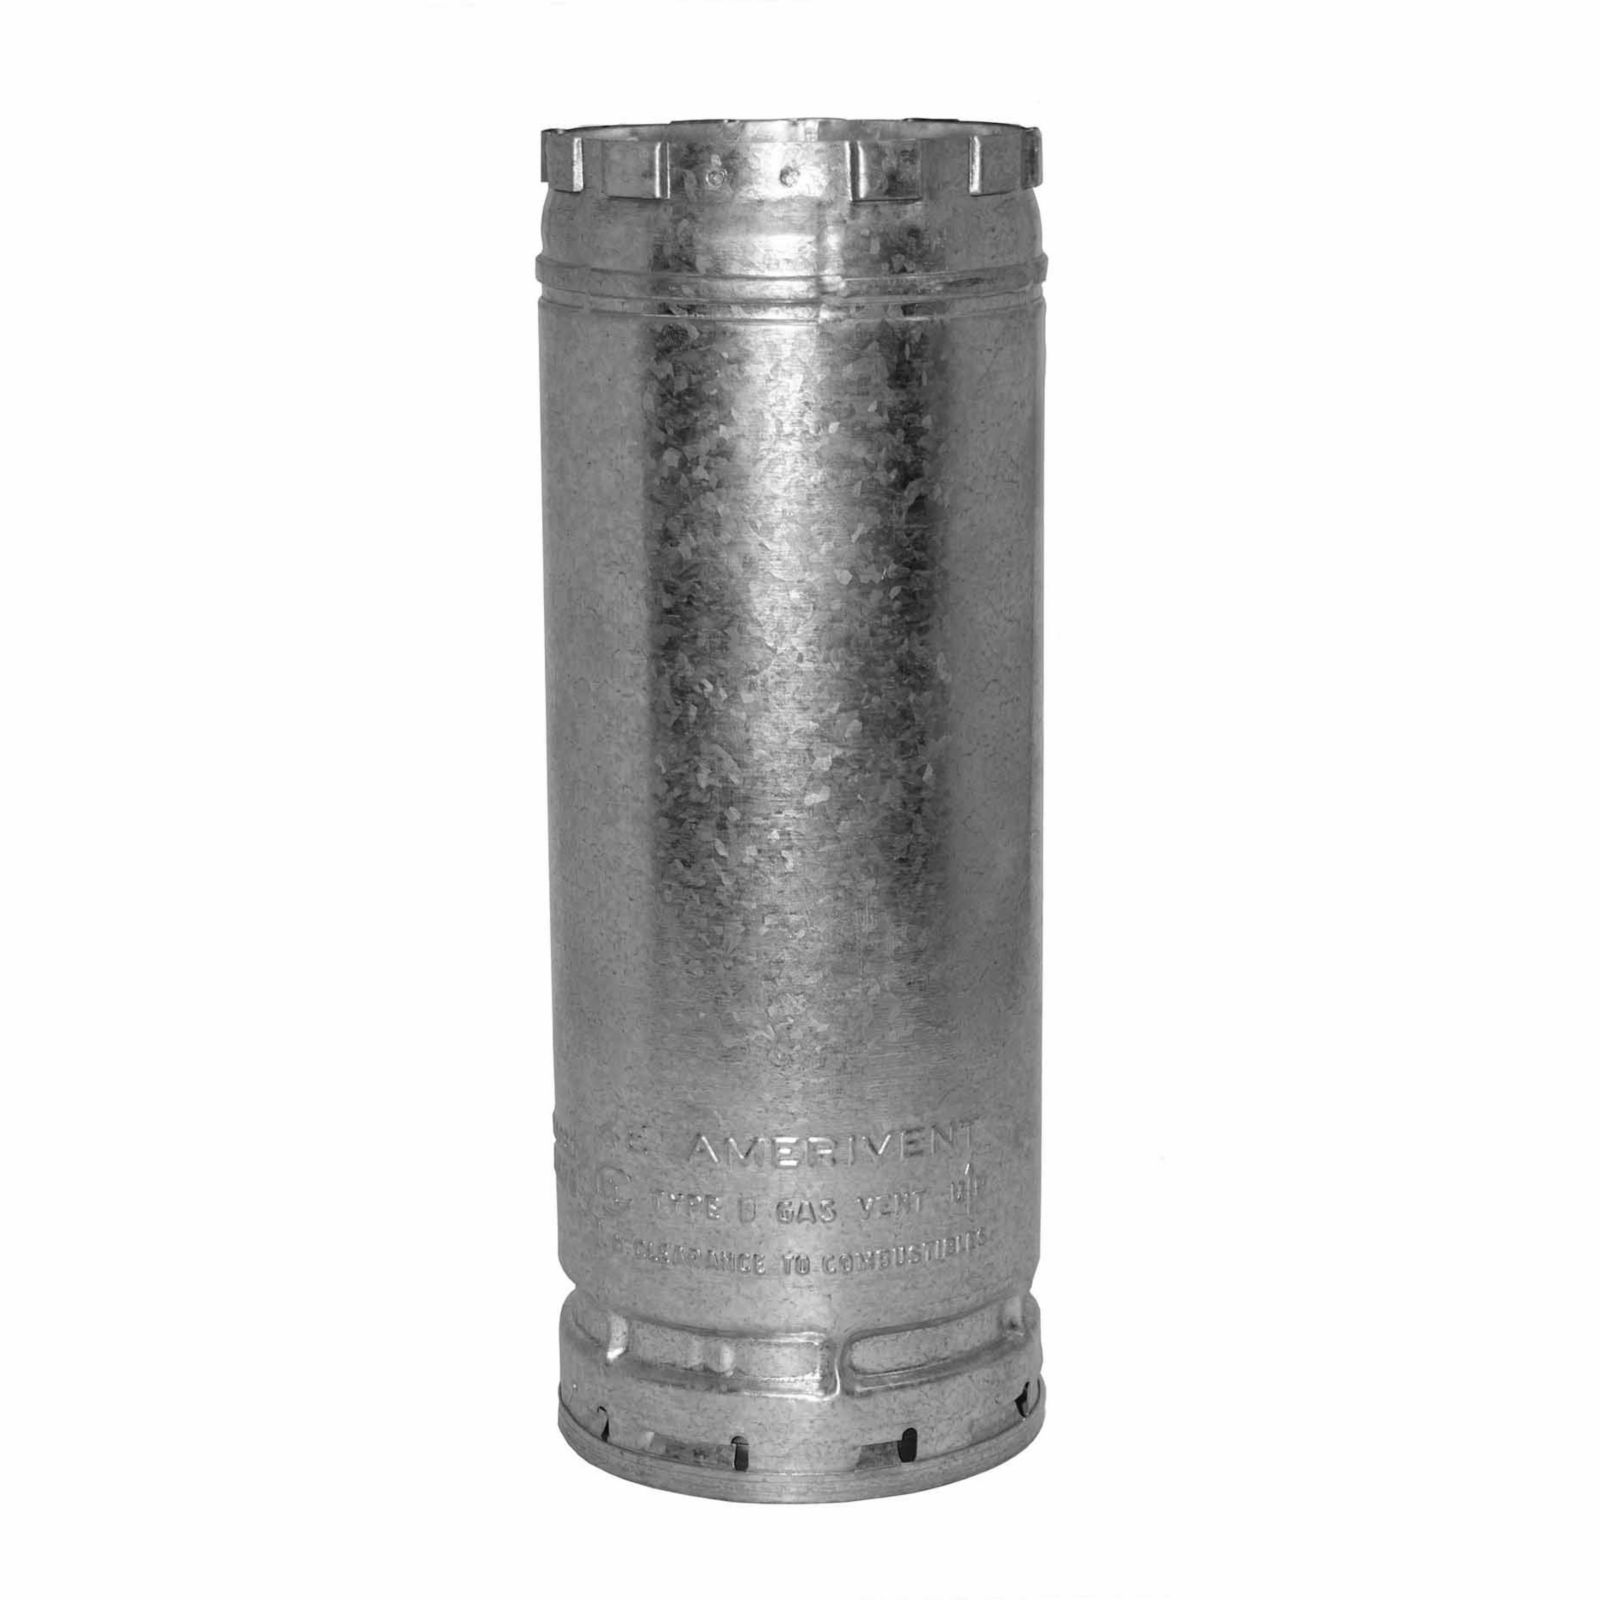 "AmeriVent 5E24 - Pipe Section Type B Gas Vent, 5"" Round X 24"" Length"